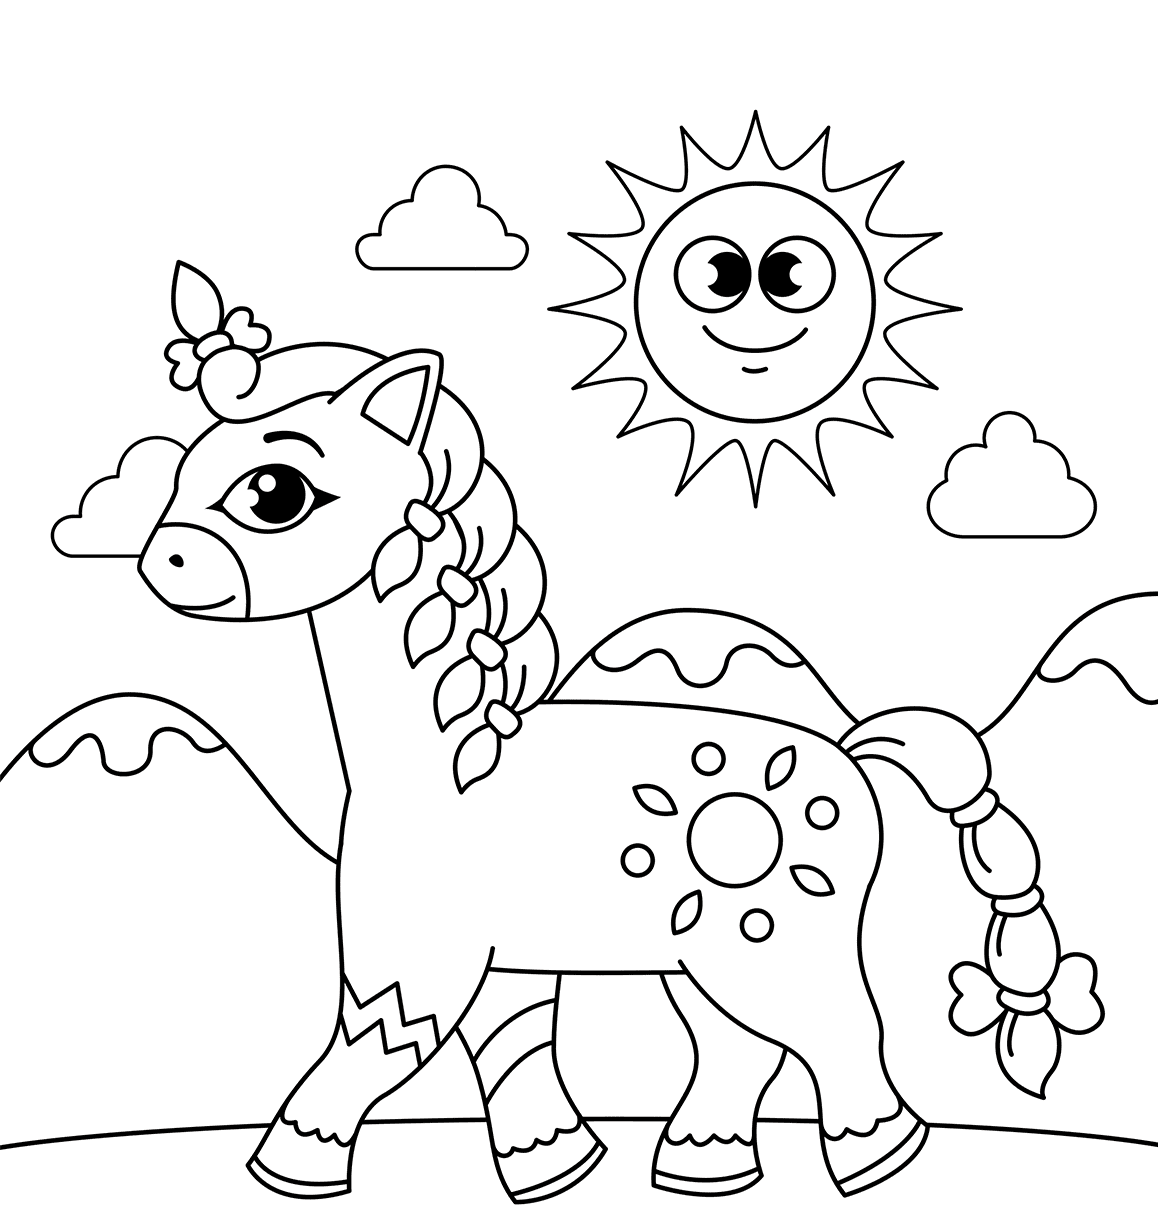 Free Printable Horse Coloring Pages (With images)   Animal ...